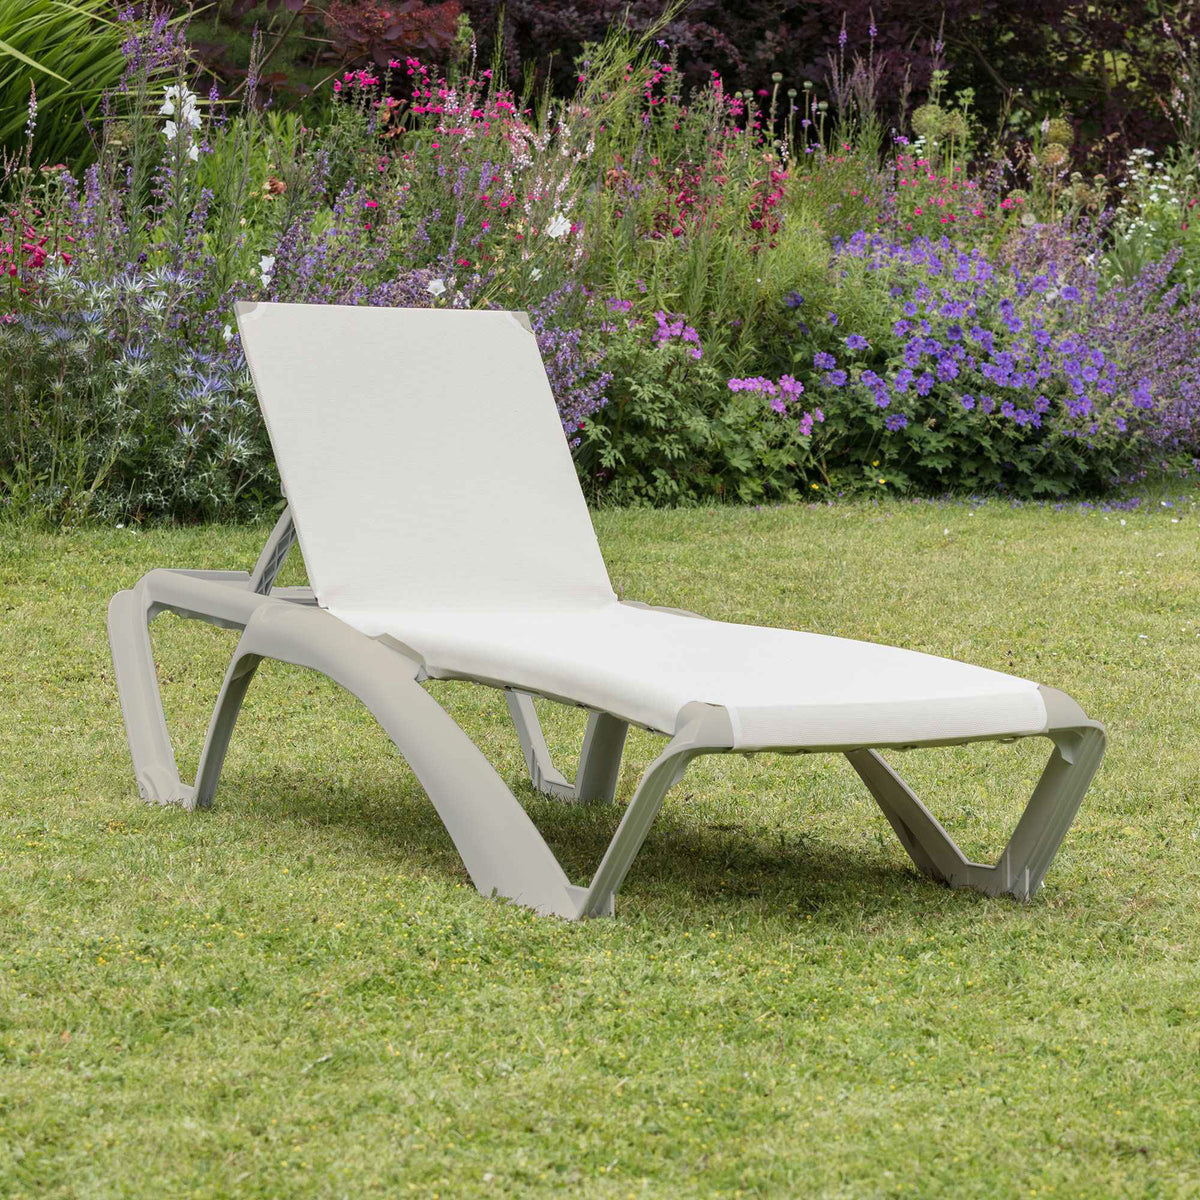 Resol Marina Sun Lounger - Ivory Cream Frame with Natural / Cream Canvas Material